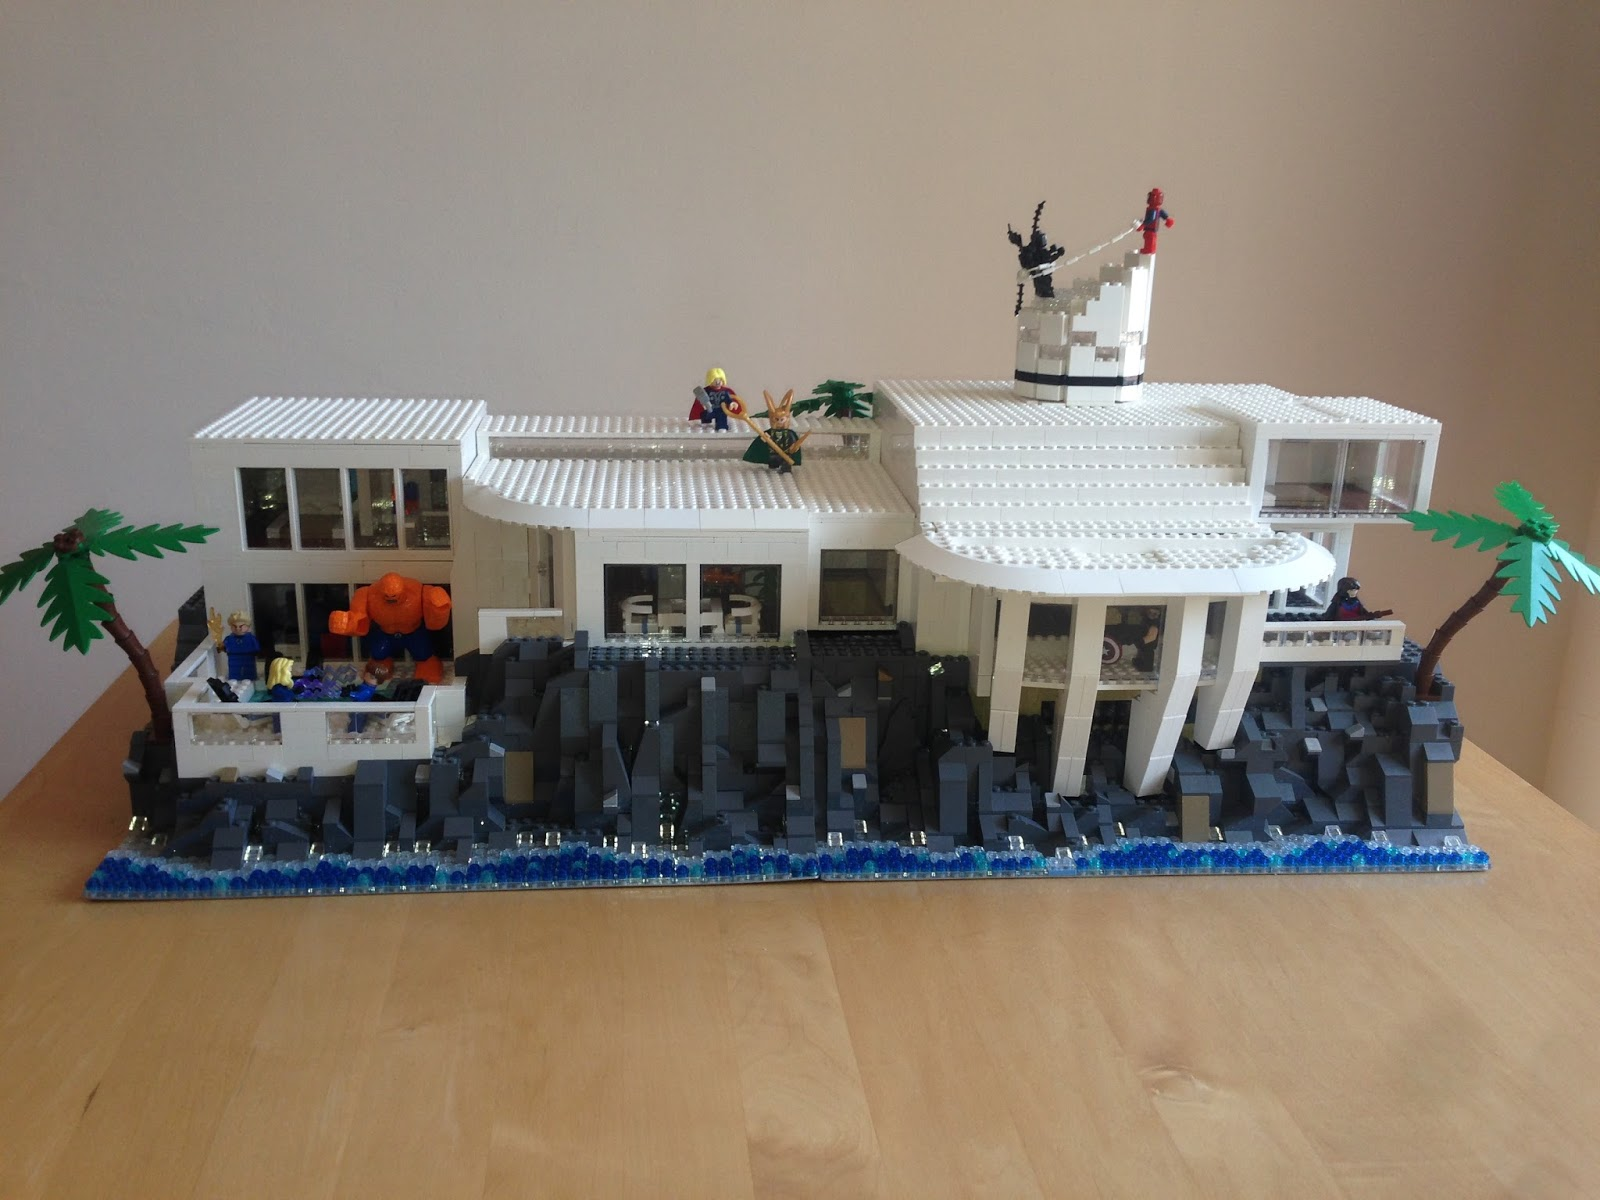 Brickasaurus lego tony stark mansion moc for Maison d iron man